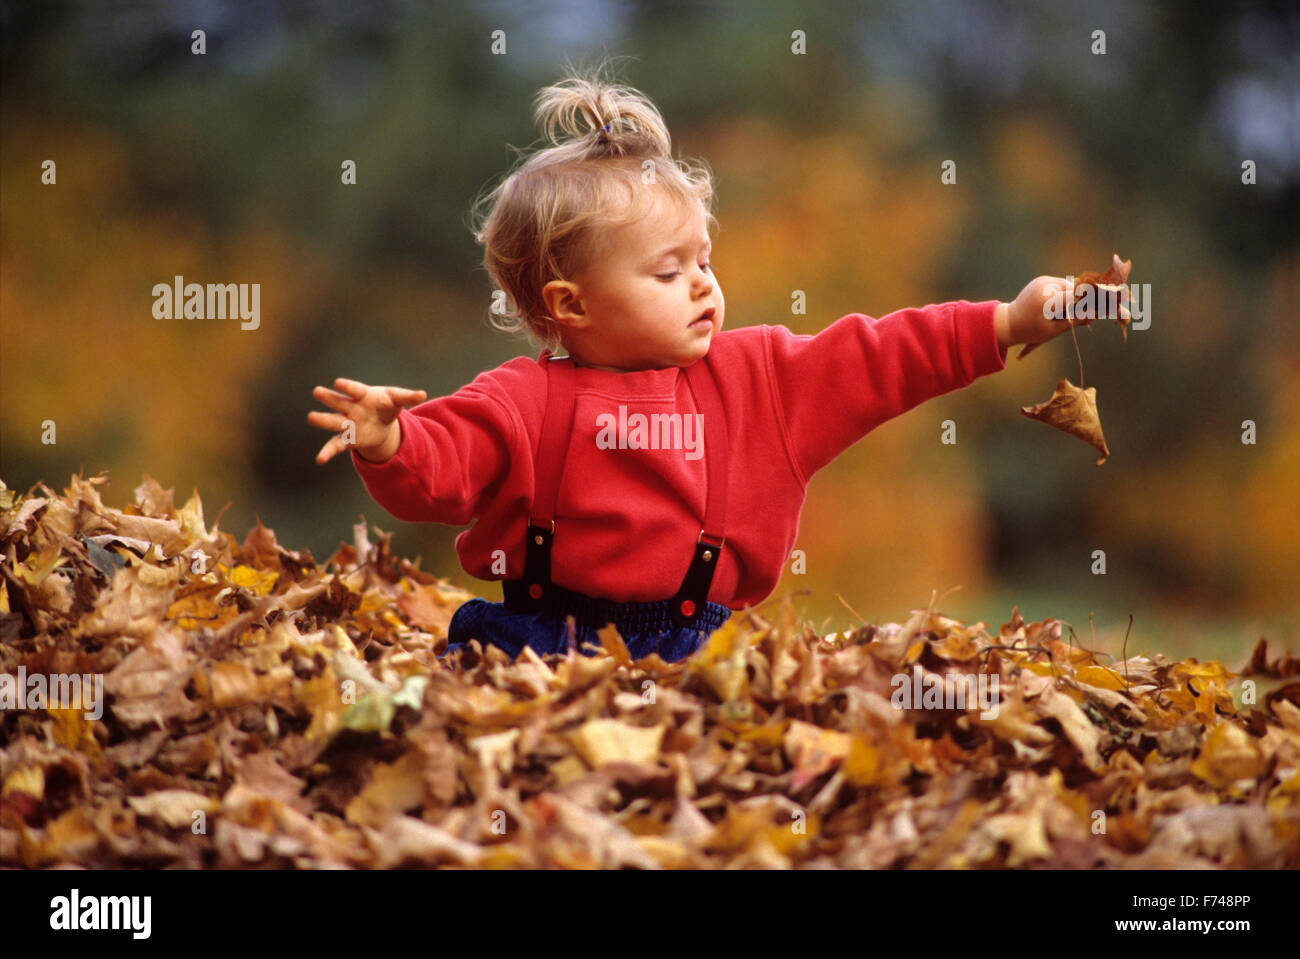 child playing in leaves holding leaf - Stock Image